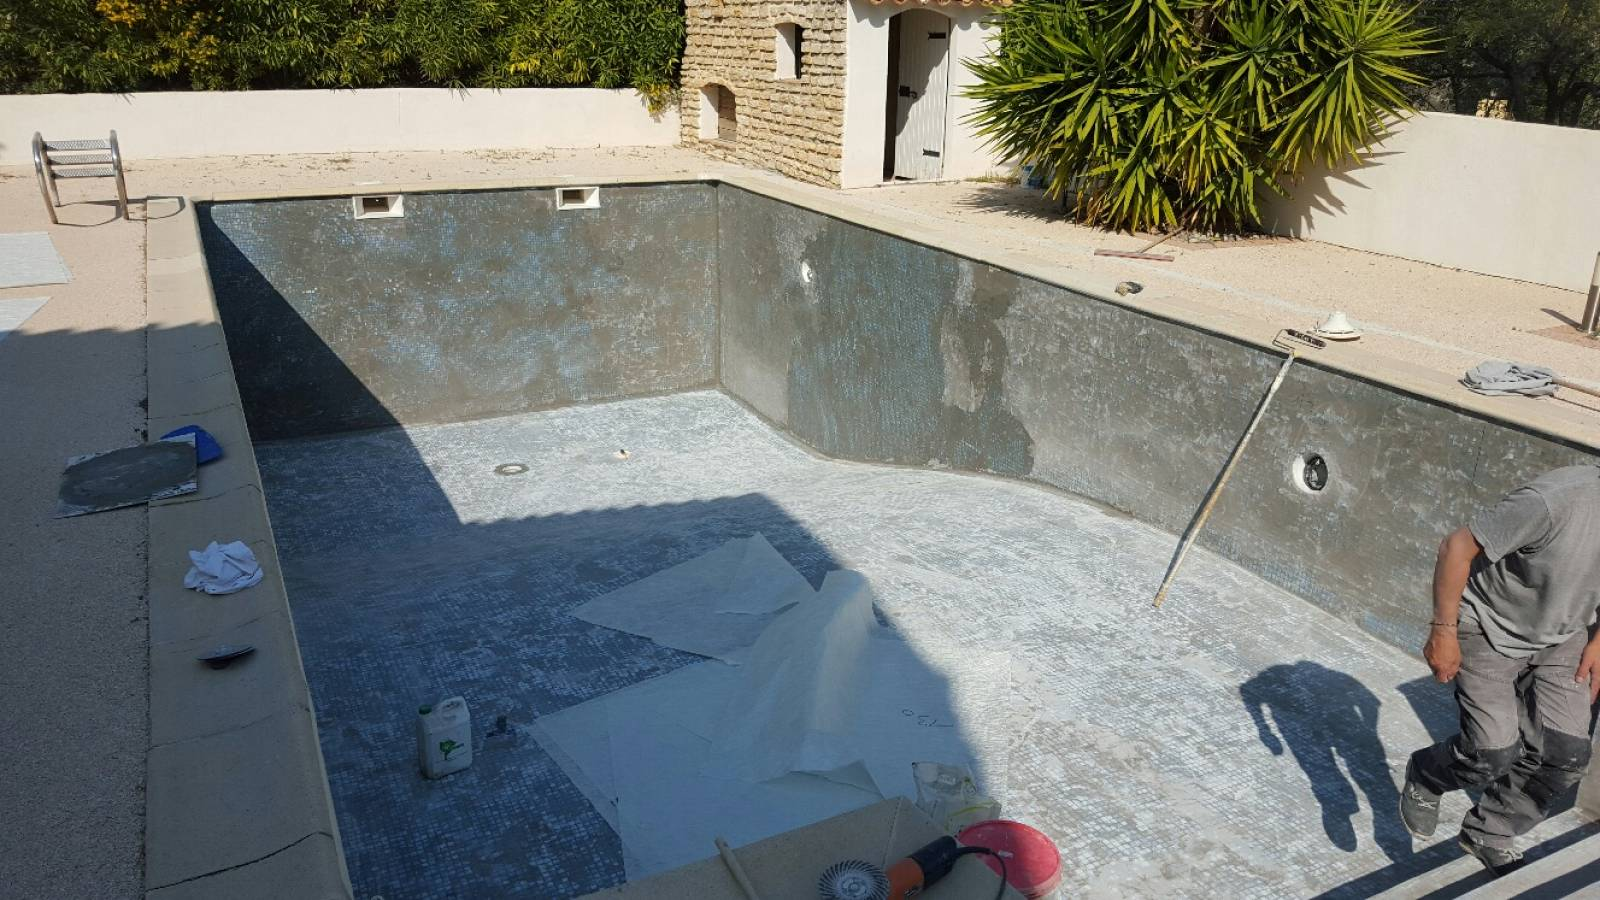 R fection par tanch it d 39 une piscine carrel e qui fuit for Etancheite piscine beton